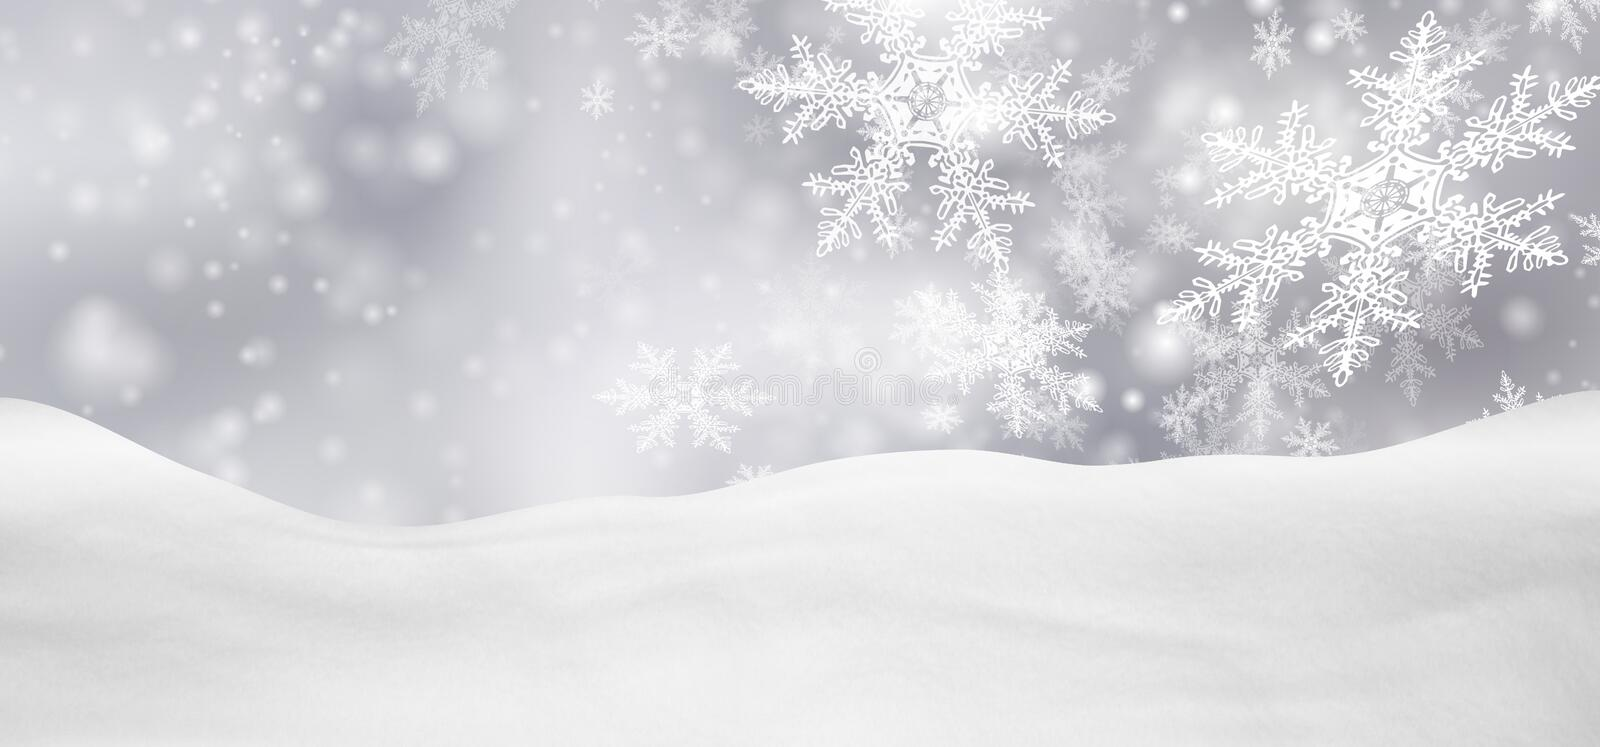 Abstract Silver Background Panorama Winter Landscape with Falling Snowflakes royalty free stock image